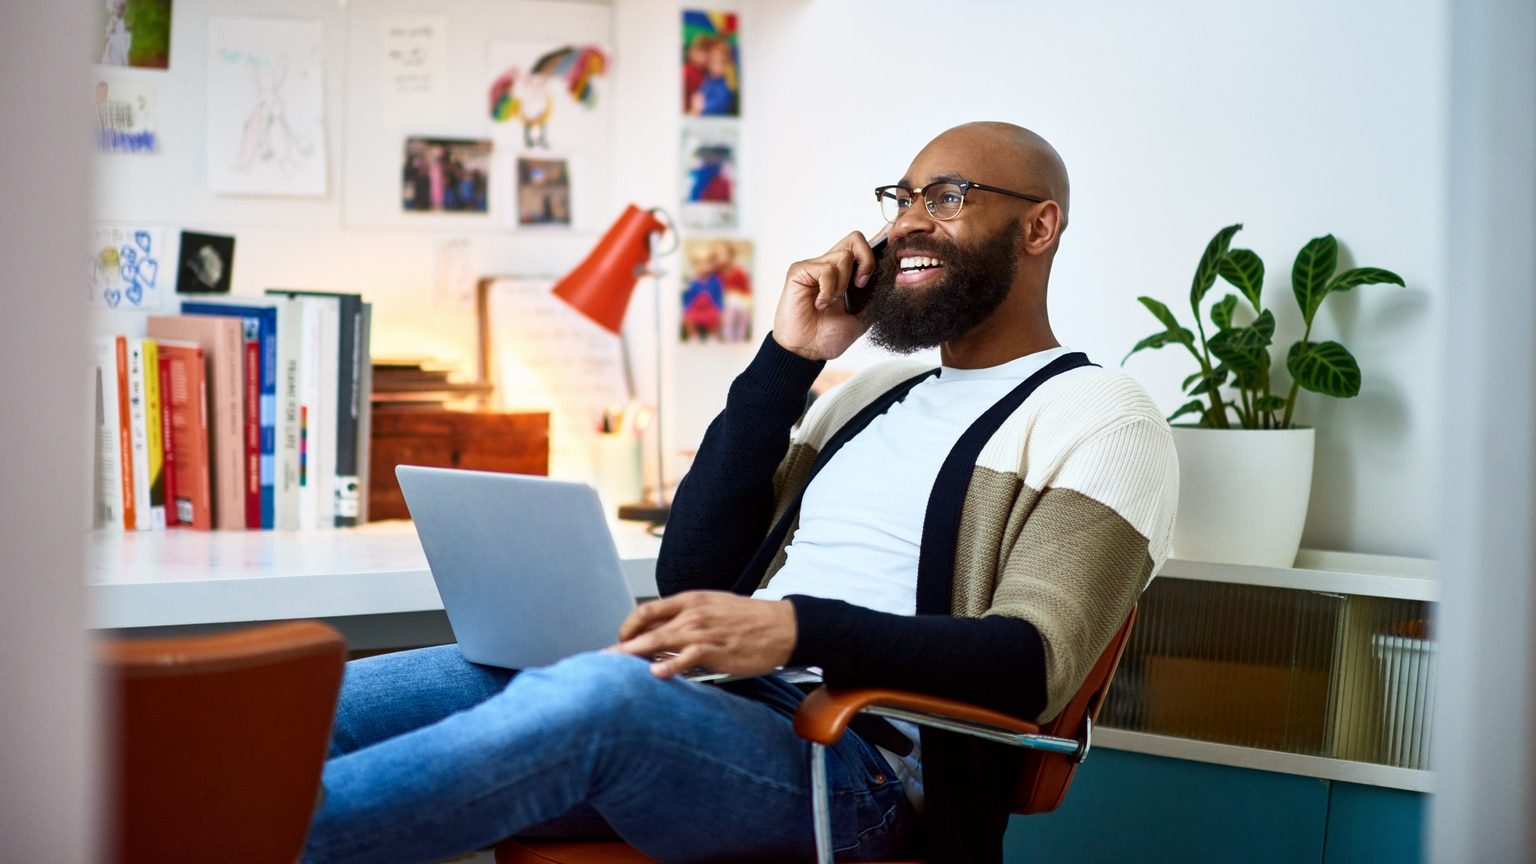 Sole proprietorship business owner working from home office